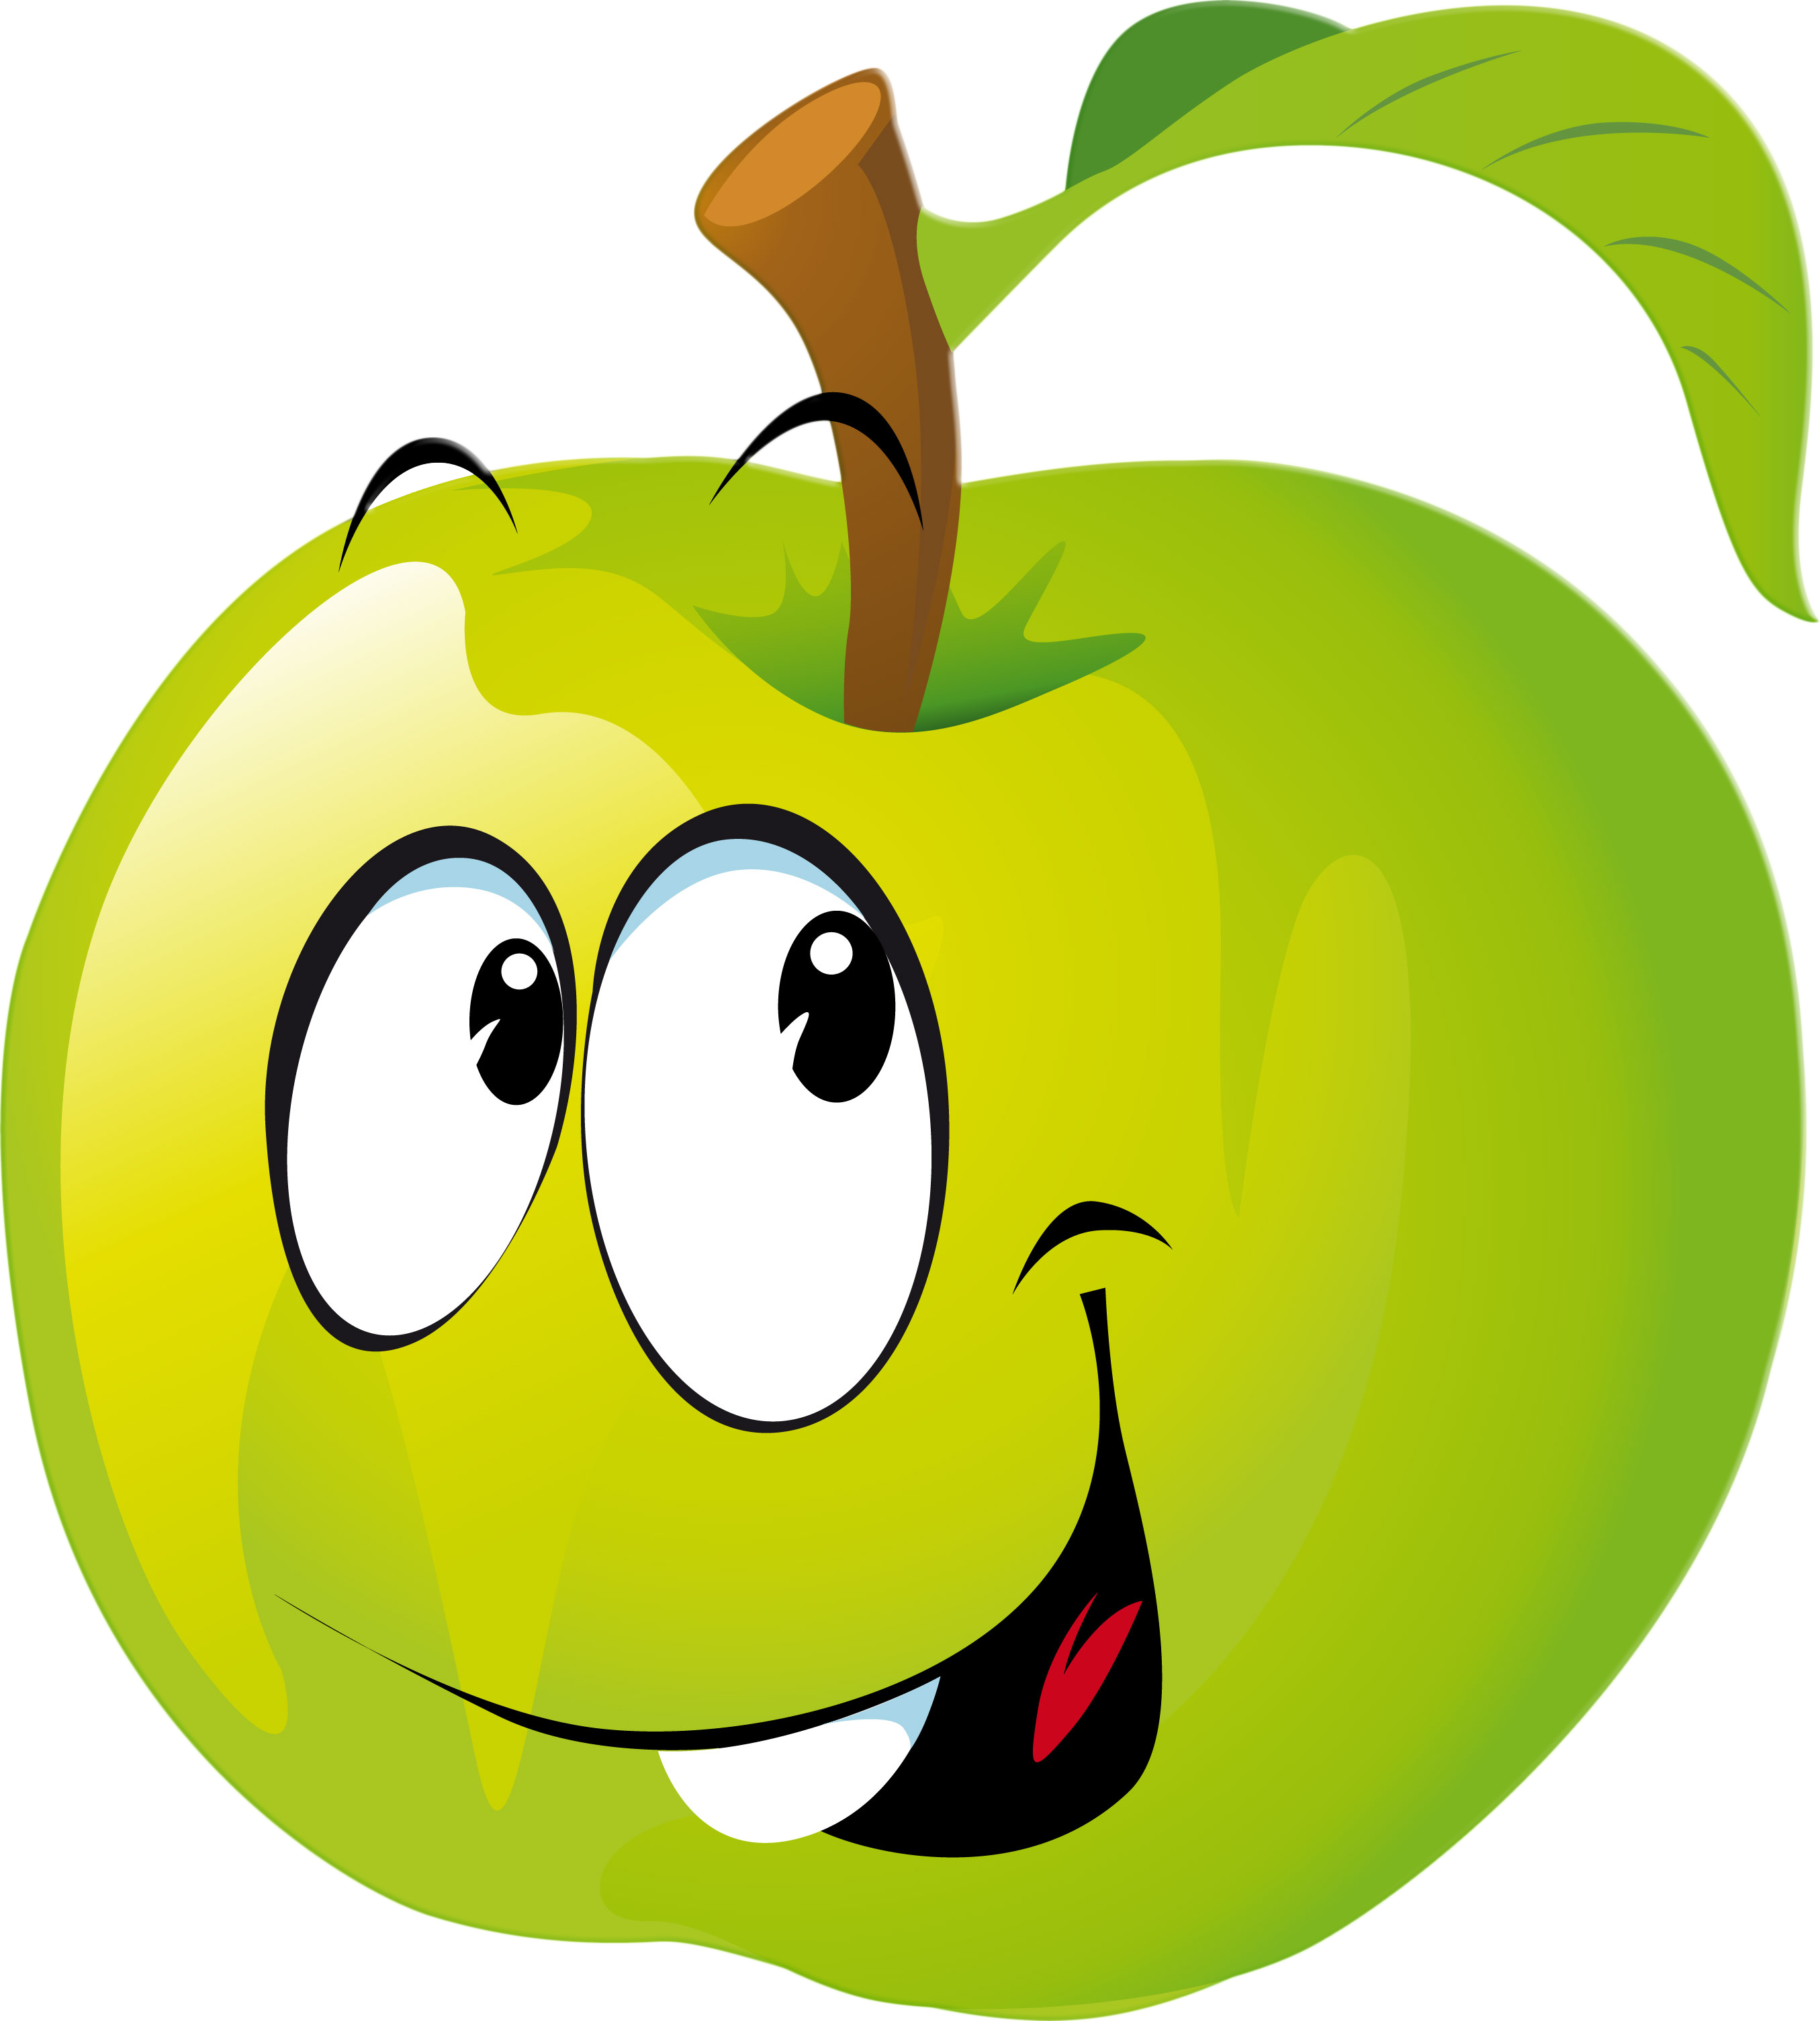 Clipart sad apple picture stock 0_1089d6_6af02cd6_orig.png (2710×3009) | Яблочки | Pinterest ... picture stock